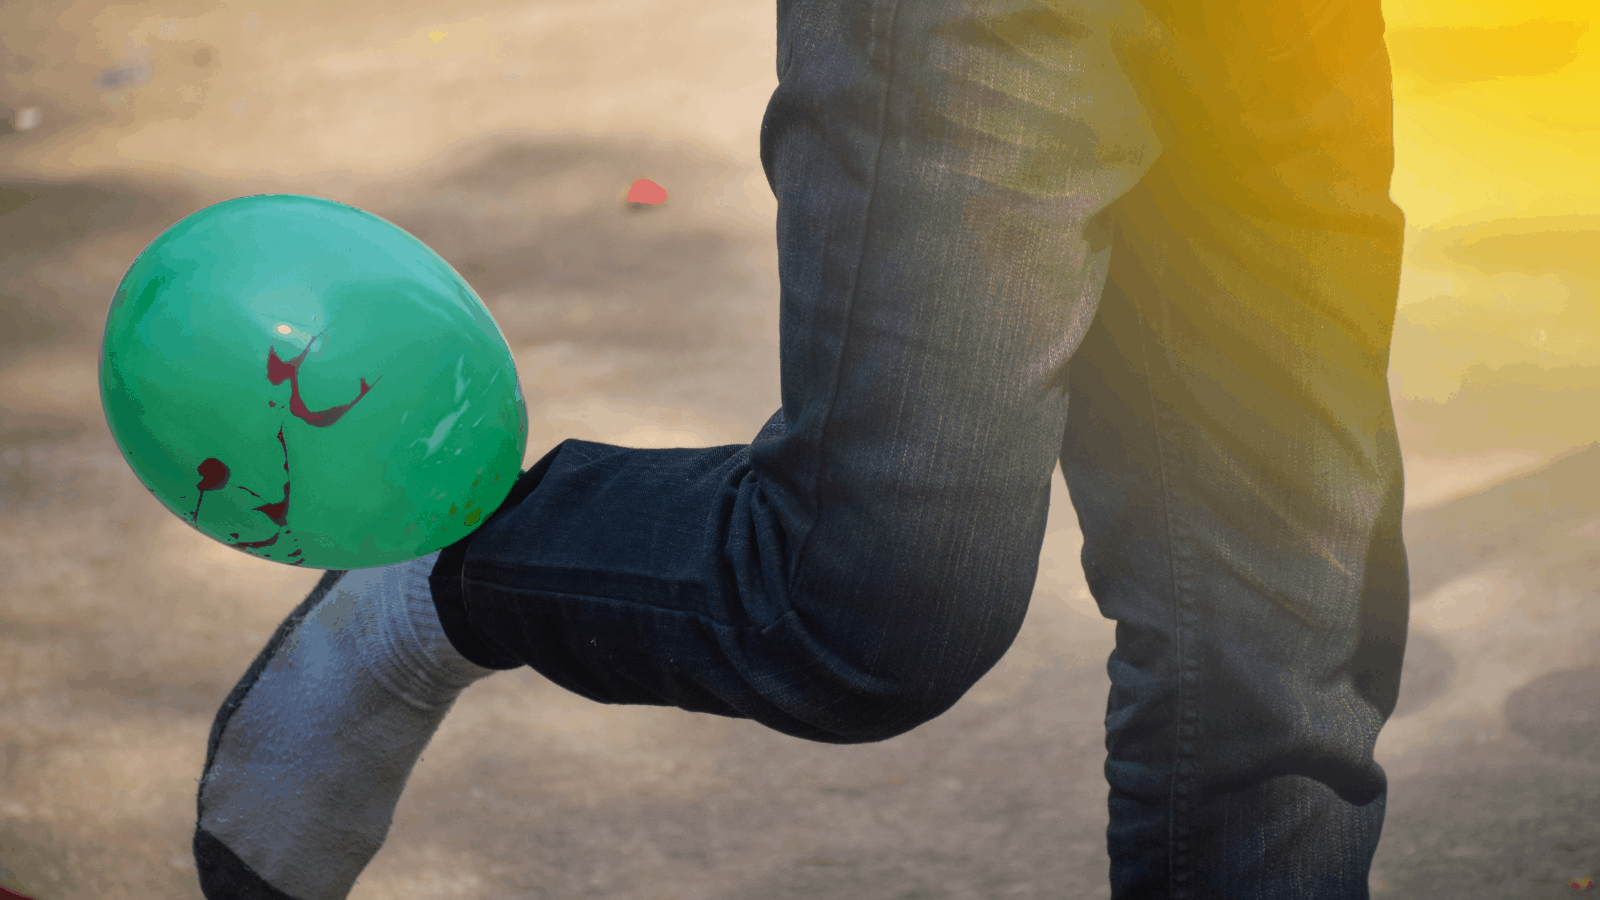 Balloon Stomp Party Games For Teens